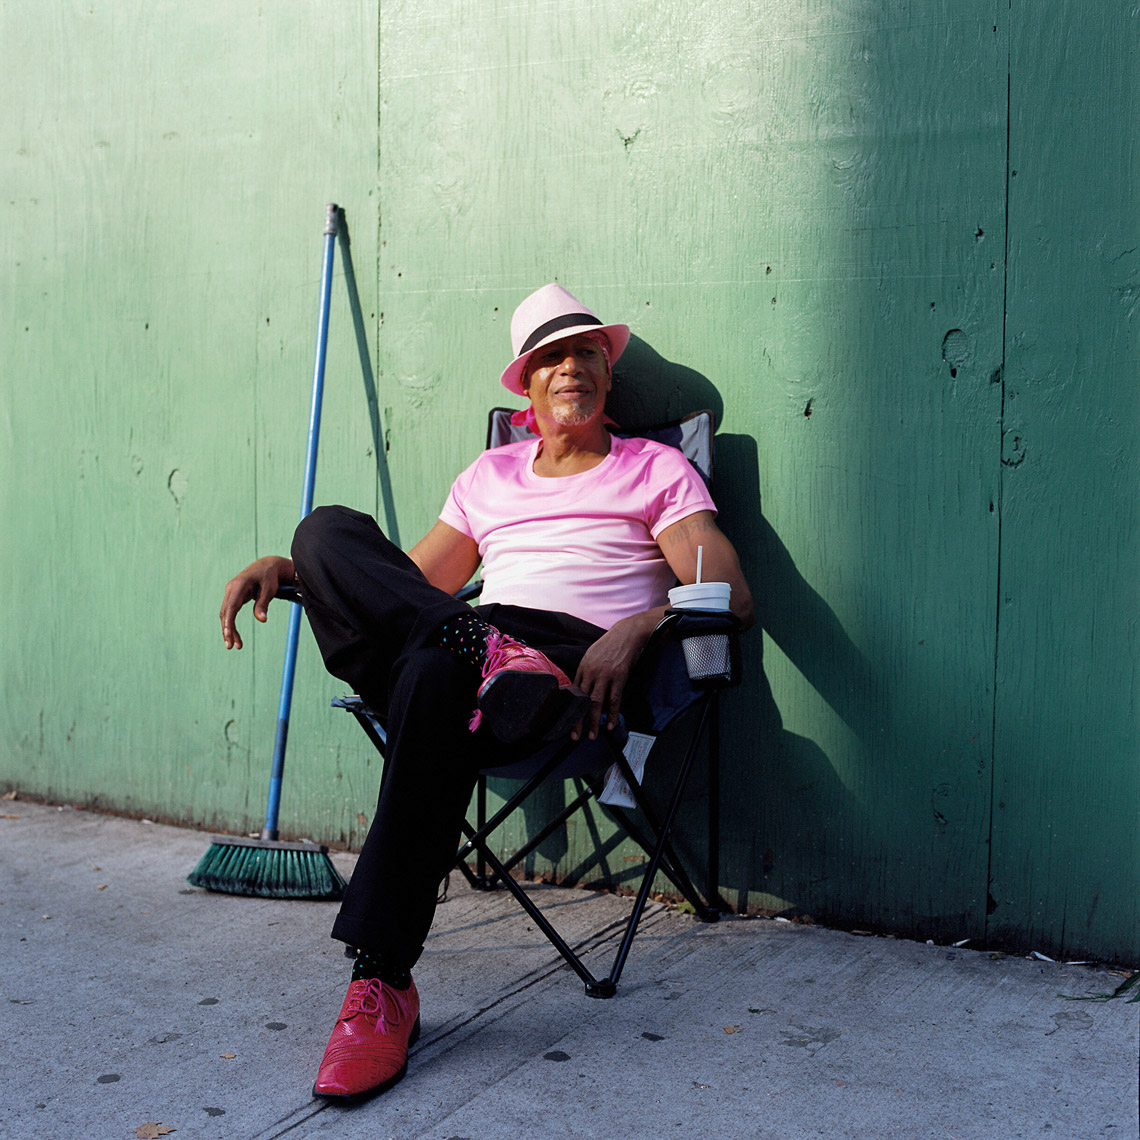 A guy chills out from the summer heat in Harlem NYC